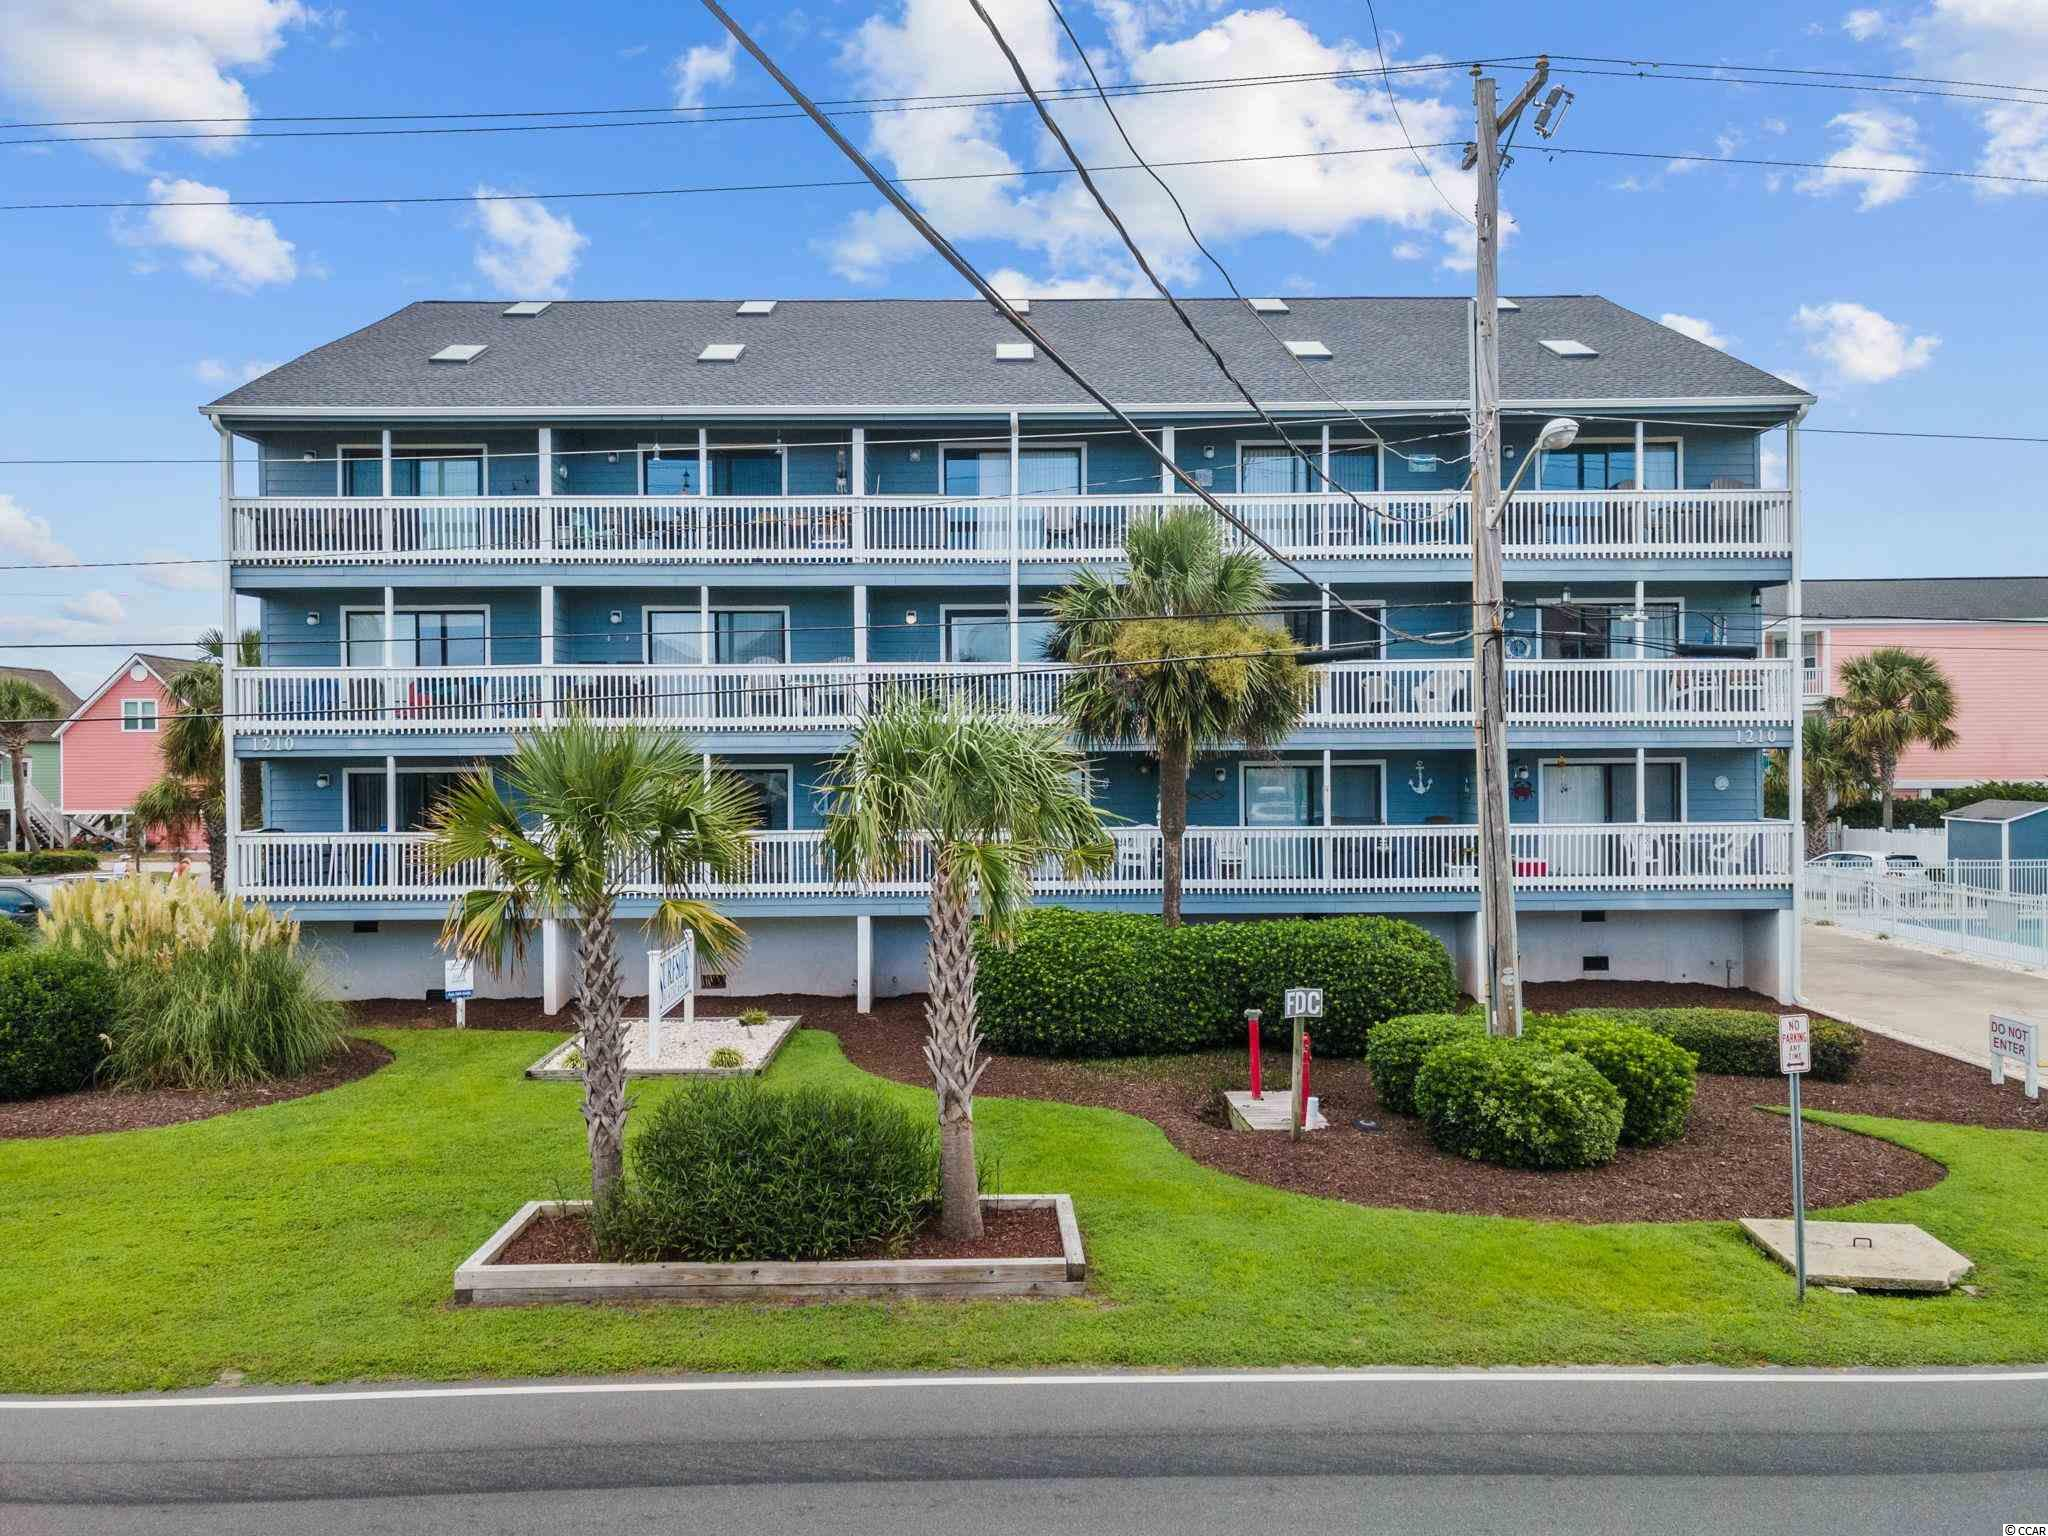 This furnished, 2 Bedroom, Condominium is located on Ocean Blvd in Surfside Beach.  With beach access directly across the street from the property, you can enjoy the beach without a long commute.  The unit has been beautifully furnished by the owners. Never rented, the condominium features stainless steel appliances, granite countertops in both the kitchen and bathroom, new dishwasher and water heater installed in the past year. The unit is located on the first floor with just 10 steps to navigate. From your private balcony you have a view of the Ocean. Enjoy the sounds of the ocean as you view the sunrise.